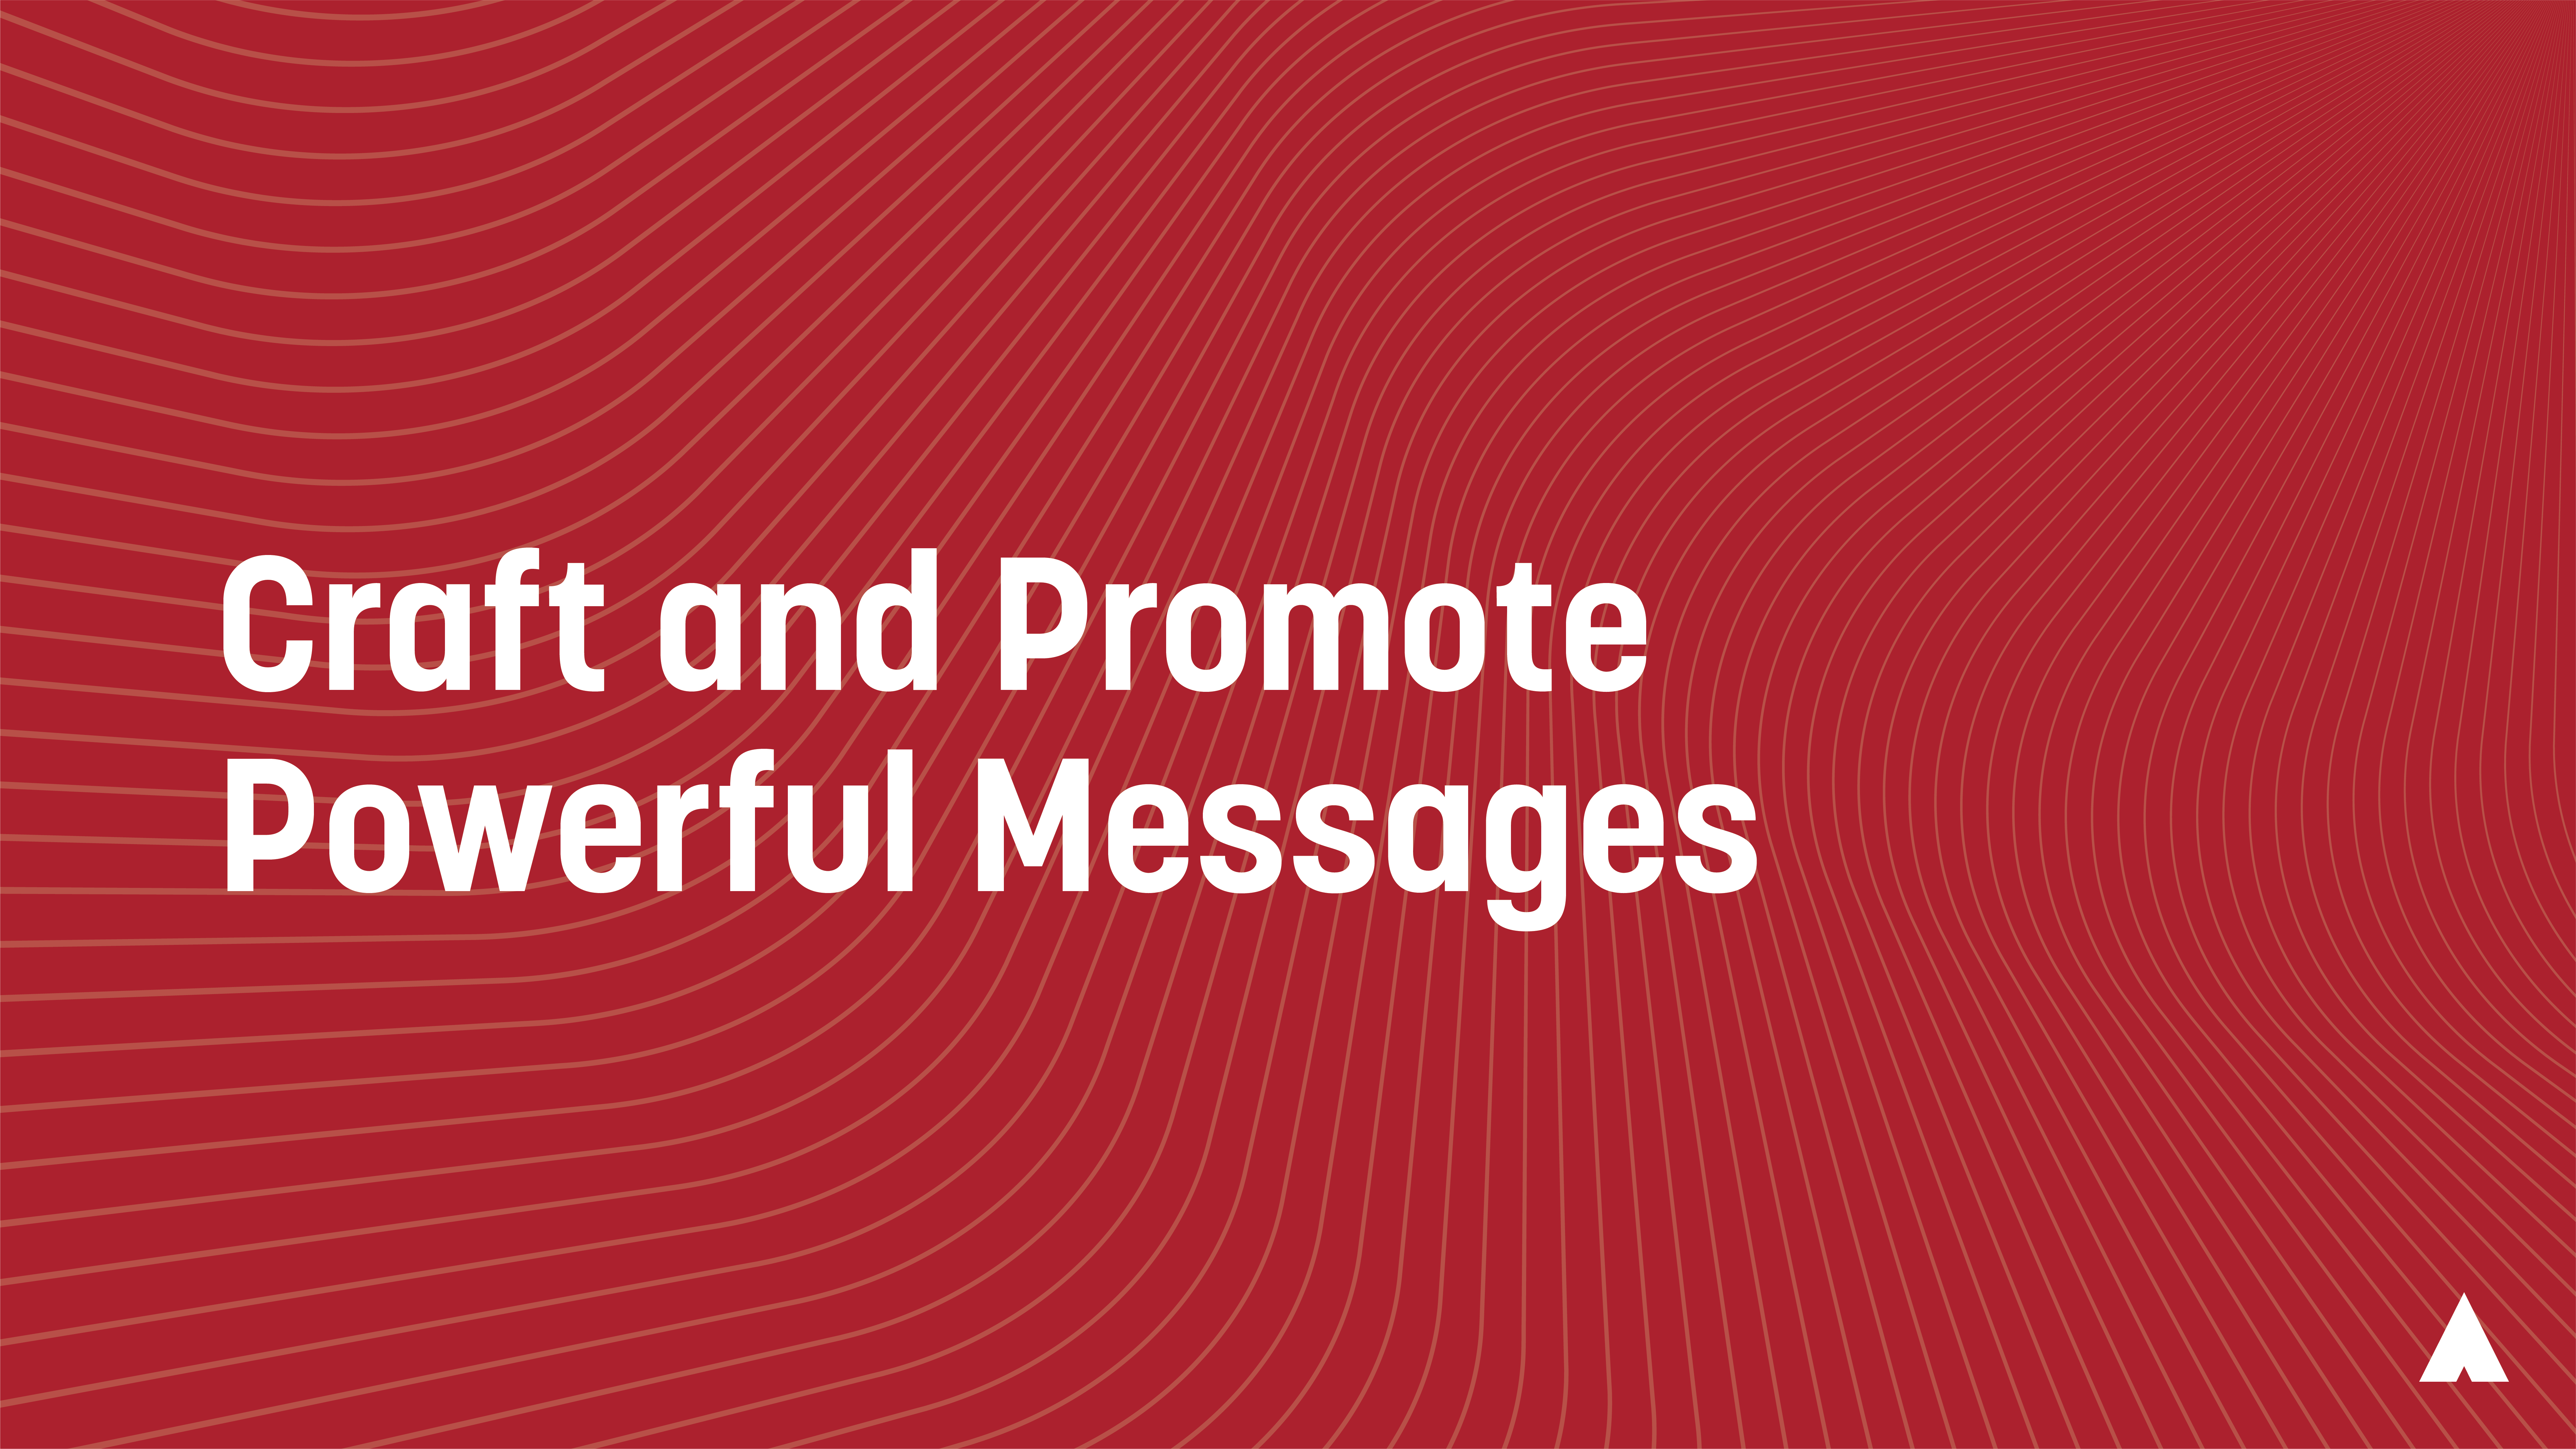 Craft and Promote Powerful Messages